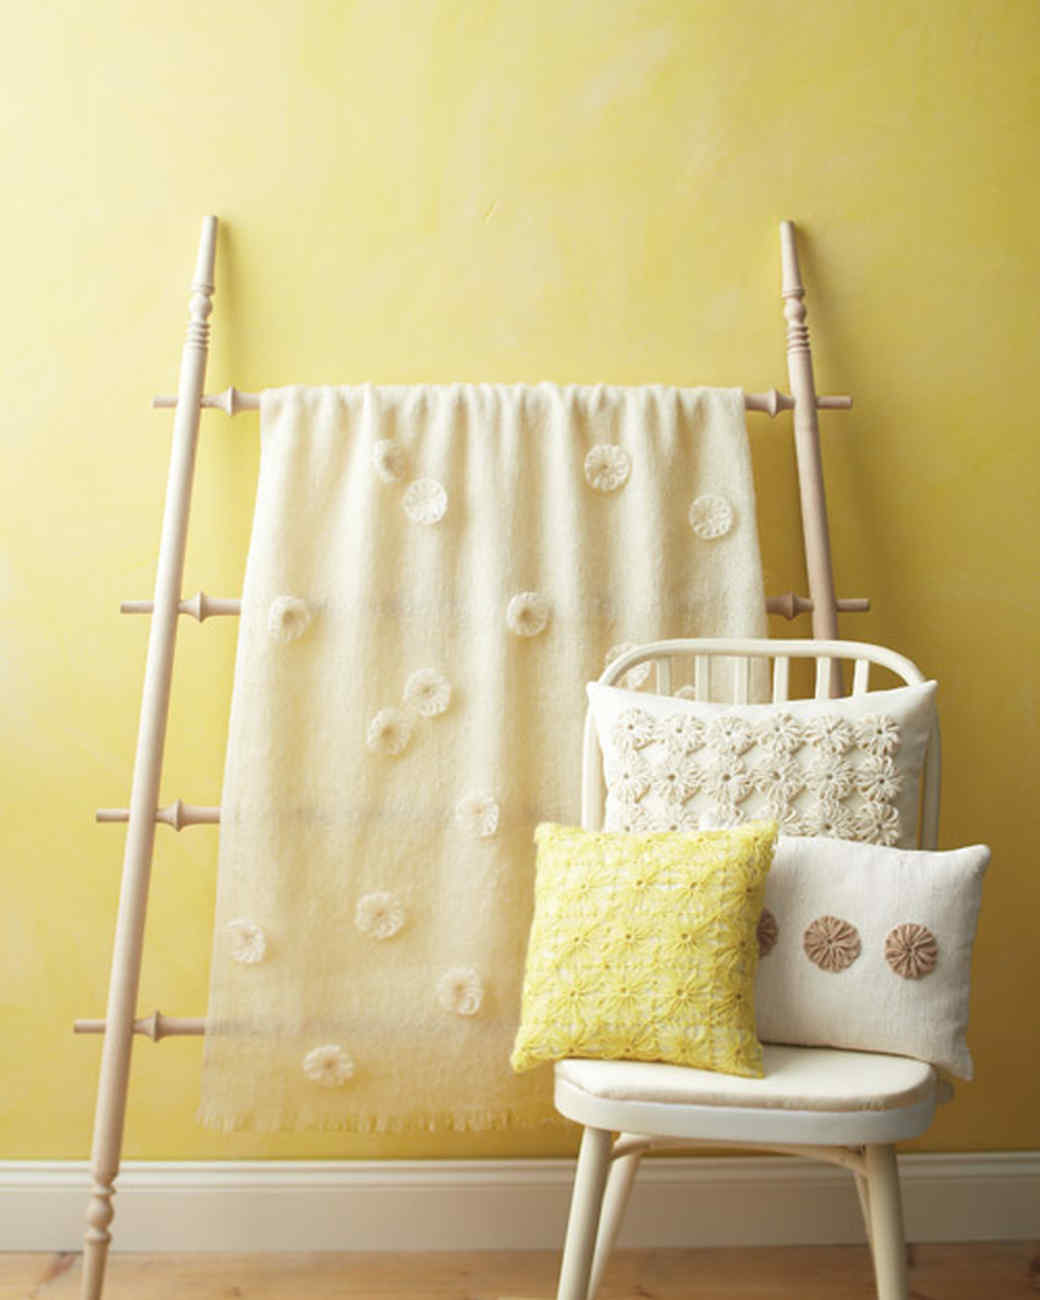 10 Easy Ways to Make Your Home Pop with Polka Dots | Martha Stewart